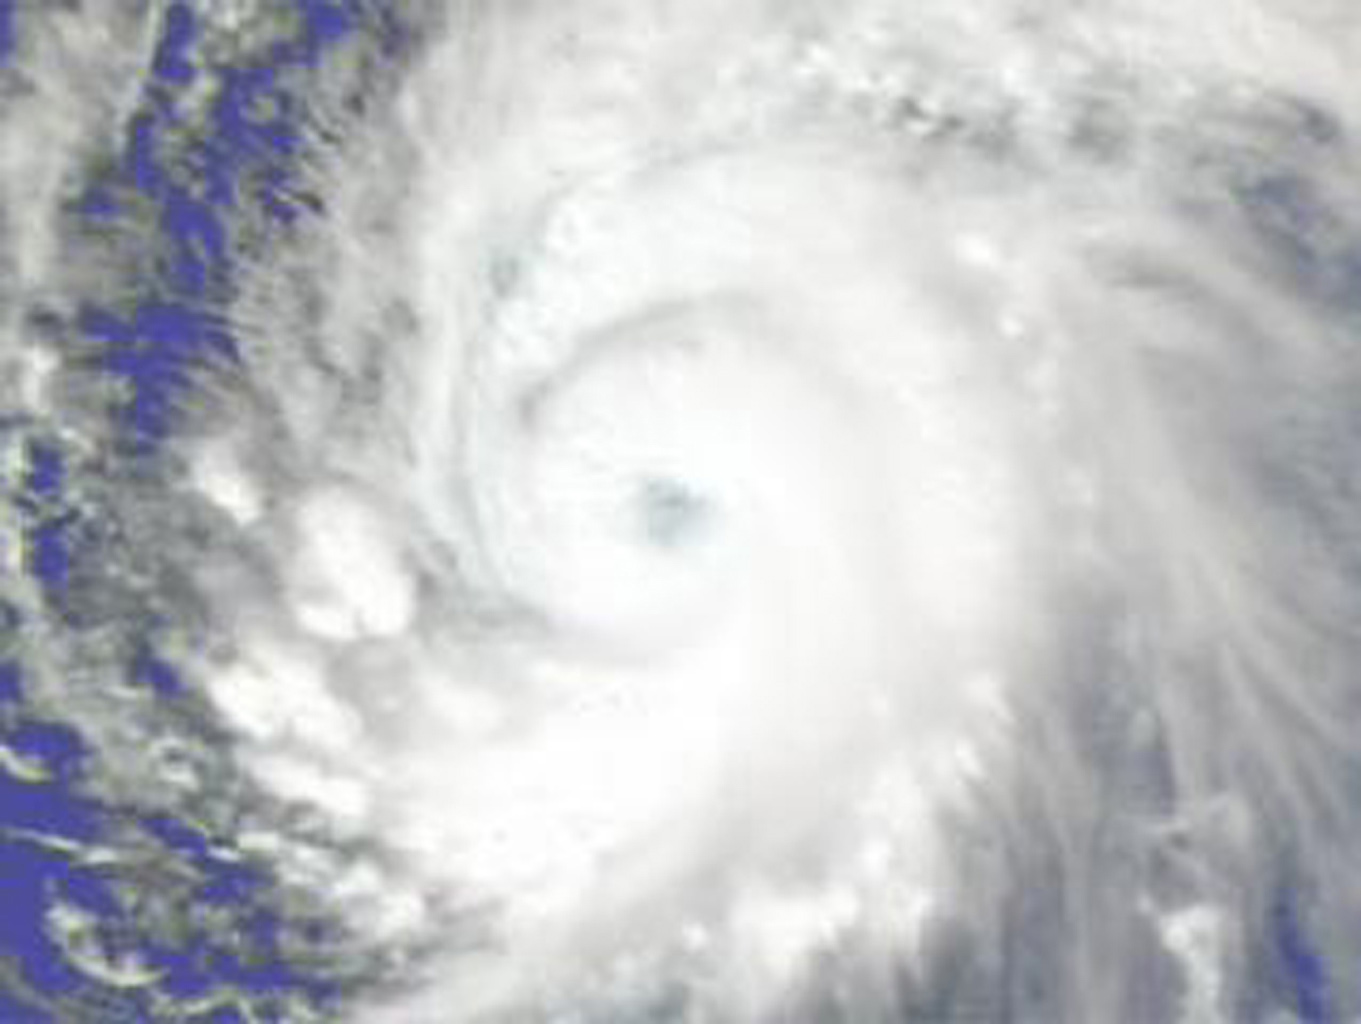 Supertyphoon Pongsona isotherms as it hit the island of Guam, December of 2002, from the Atmospheric Infrared Sounder (AIRS) on NASA's Aqua satellite.